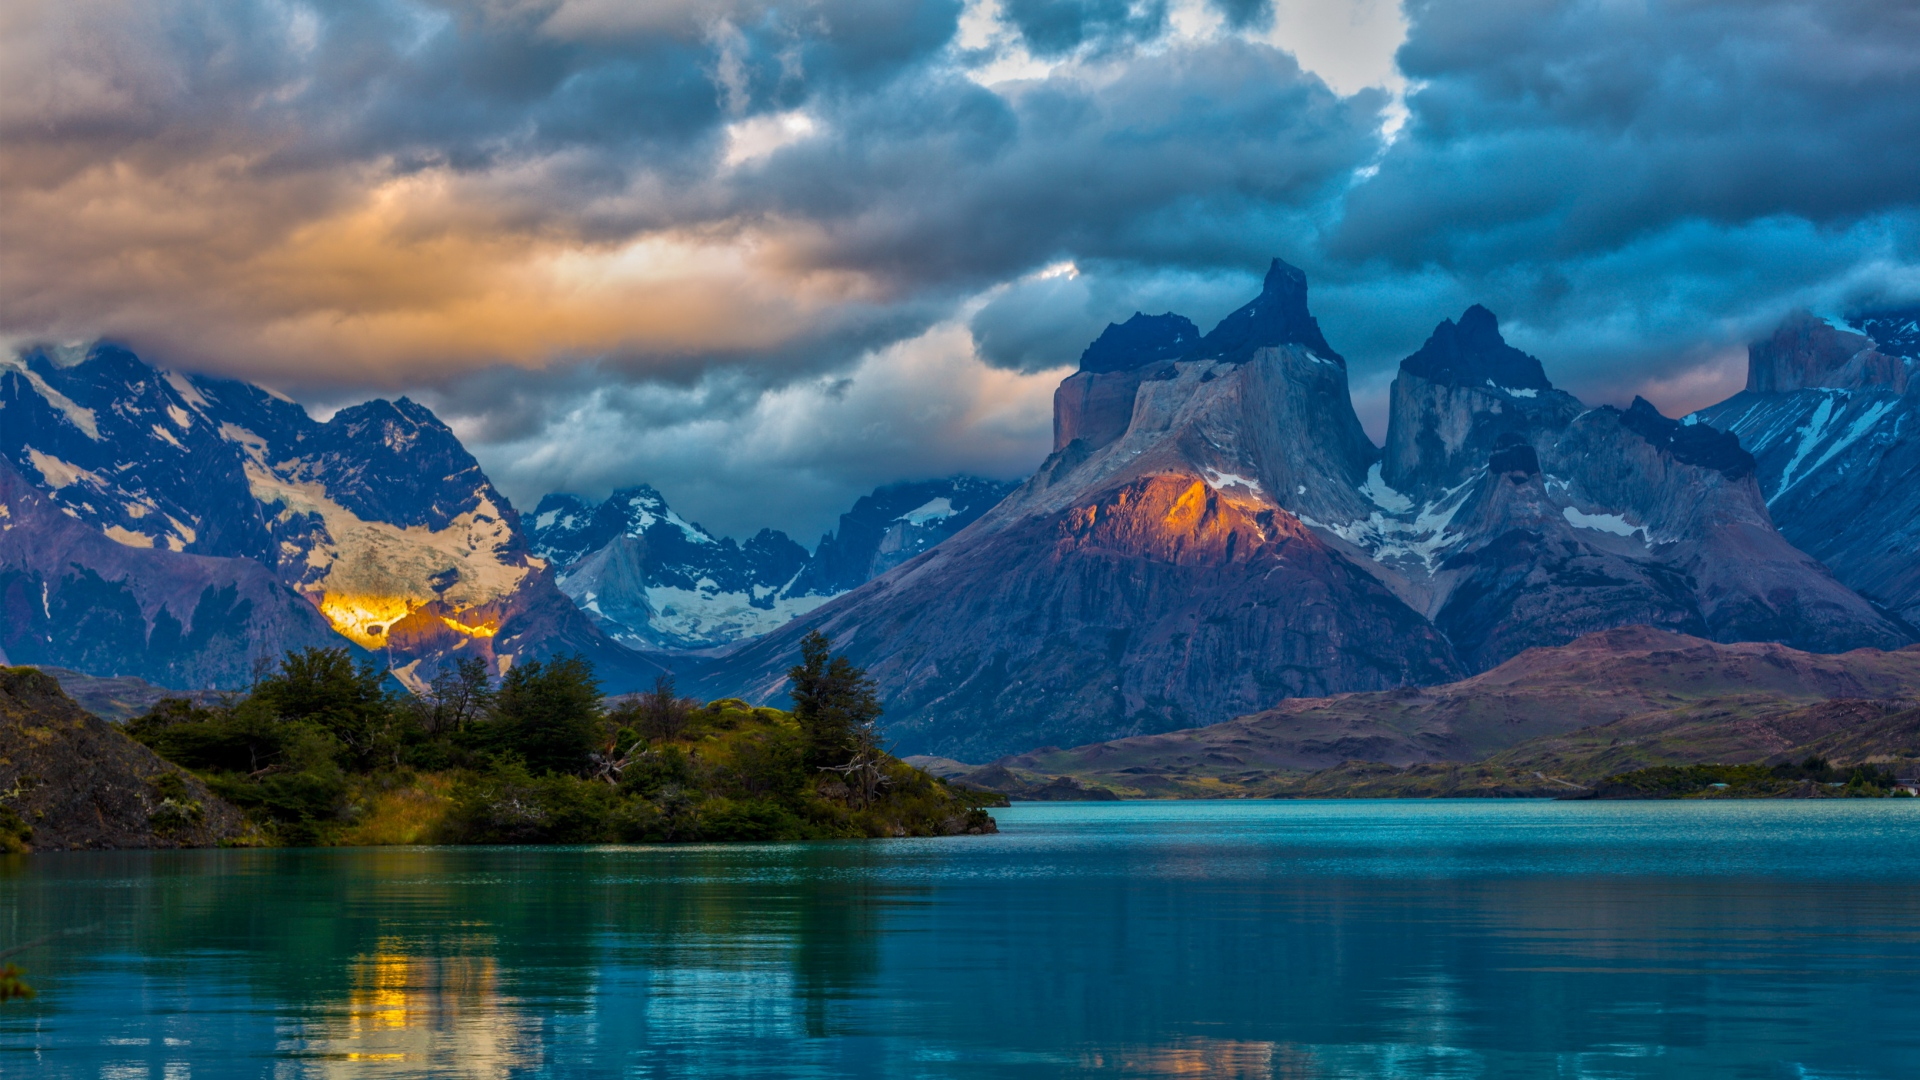 download wallpaper 1920x1080 landscape, argentina, mountain, lake